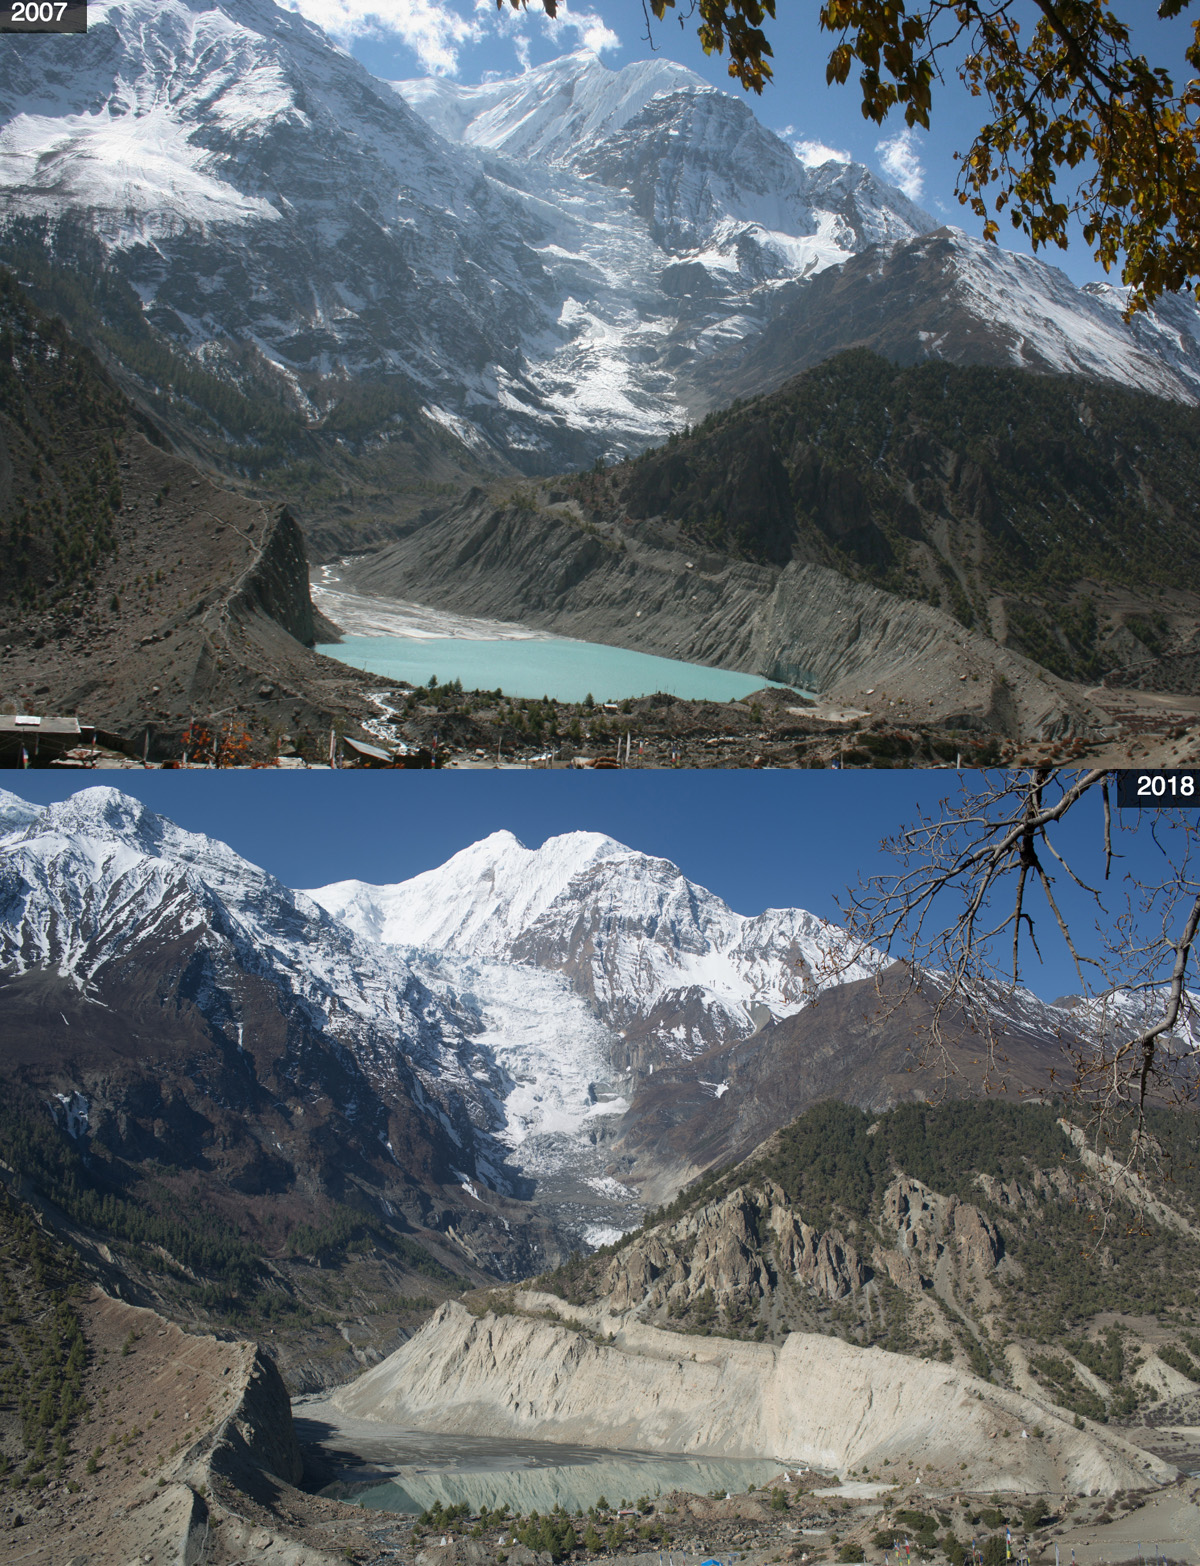 Mount Gangapurna, glacier and lake. Photo credit: Nabin Baral